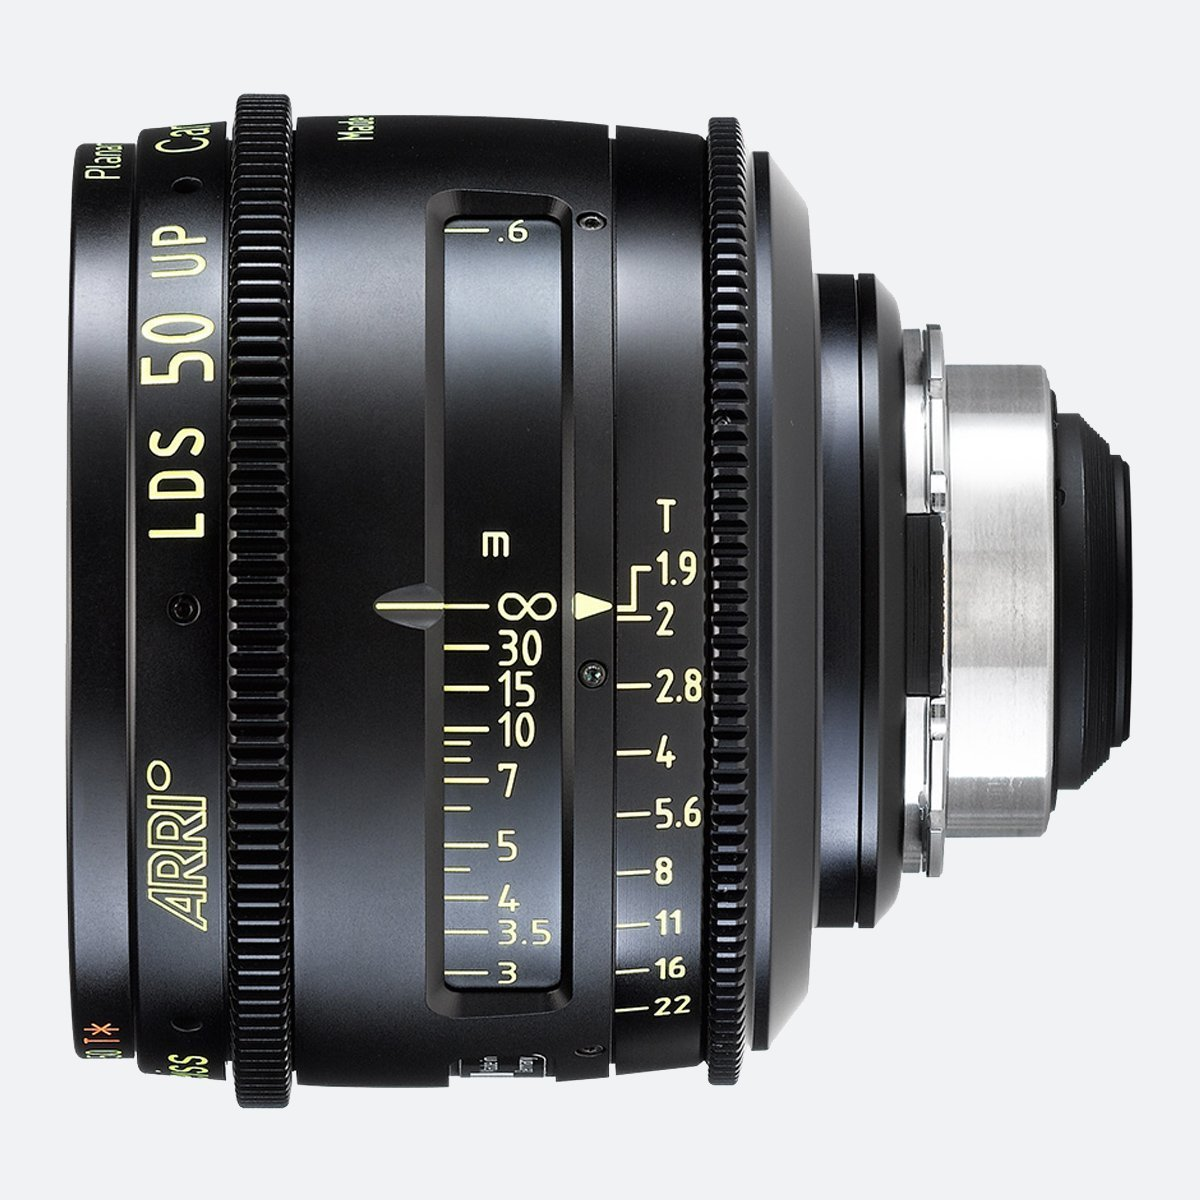 ARRI 50mm T1.9 LDS Ultra Prime Lens